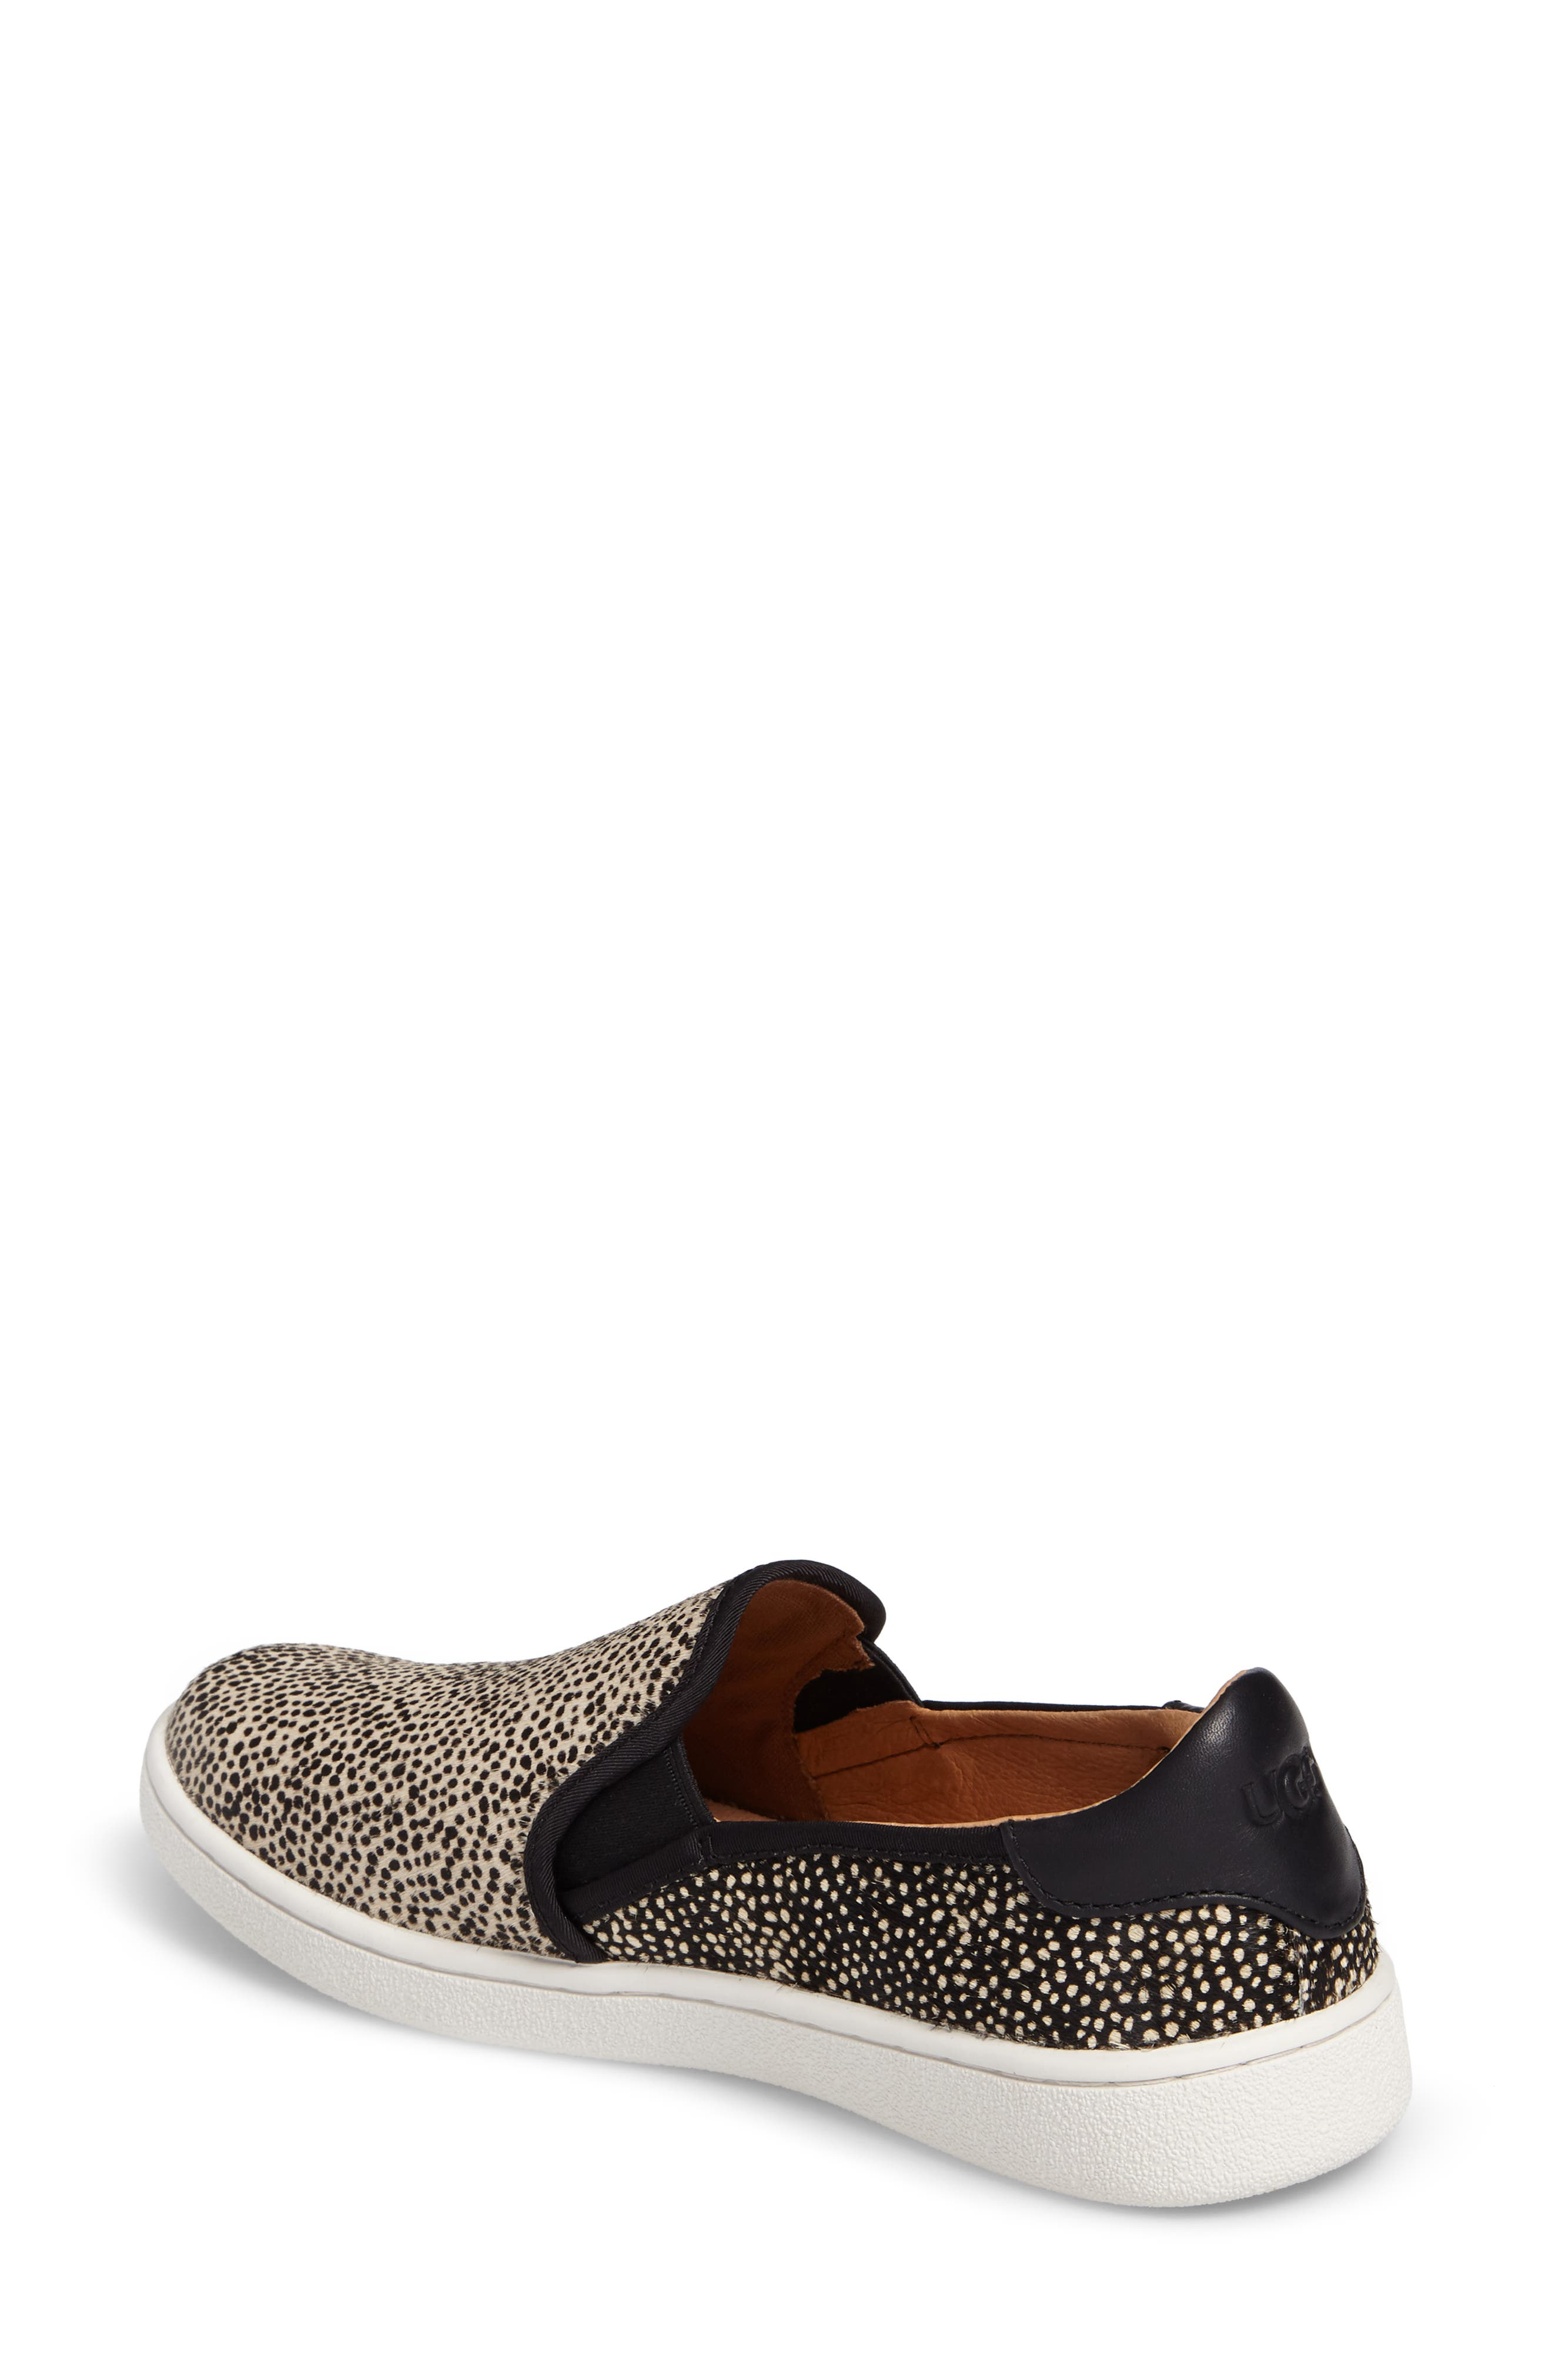 Cas Exotic Genuine Calf Hair Slip-On Sneaker,                             Alternate thumbnail 2, color,                             Black/ Tan Dotted Leather